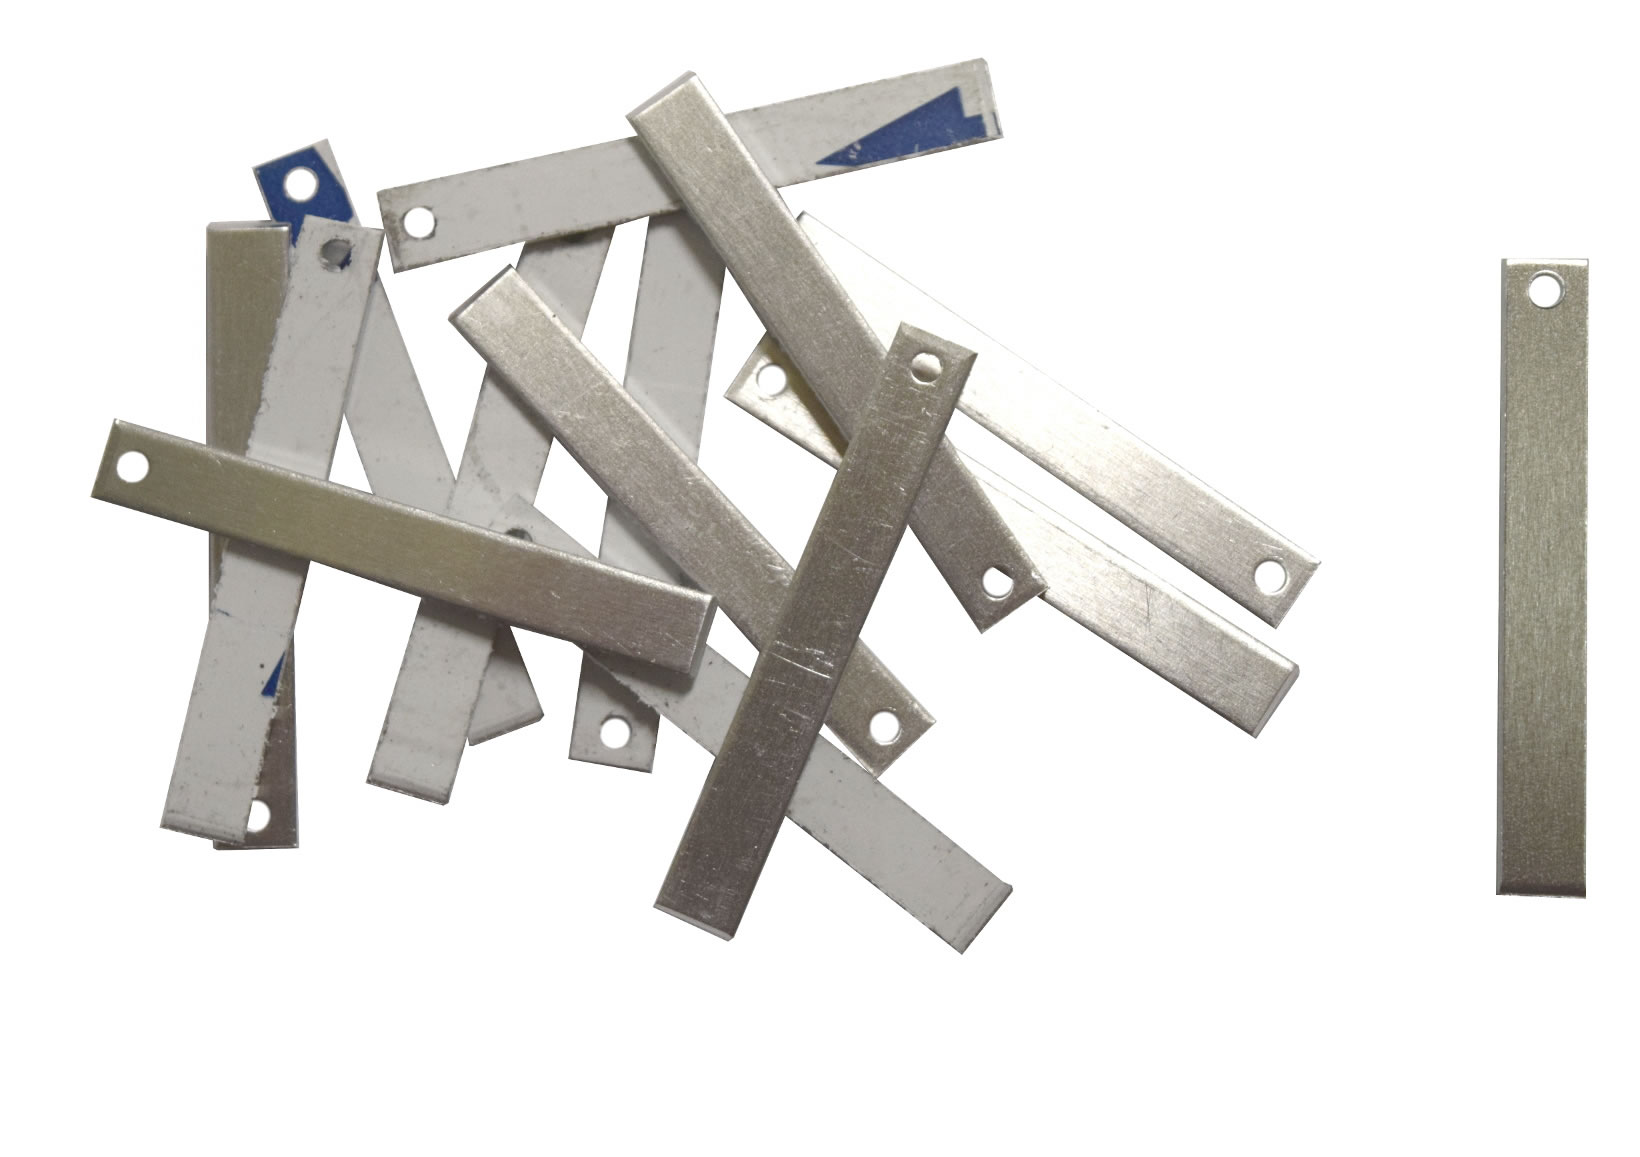 RMP Stamping Blanks Aluminum .063 Inch 50 Pack PVC Coating on both sides 14 Gauge 1//2 Inch x 2 Inch Rectangle With One Hole